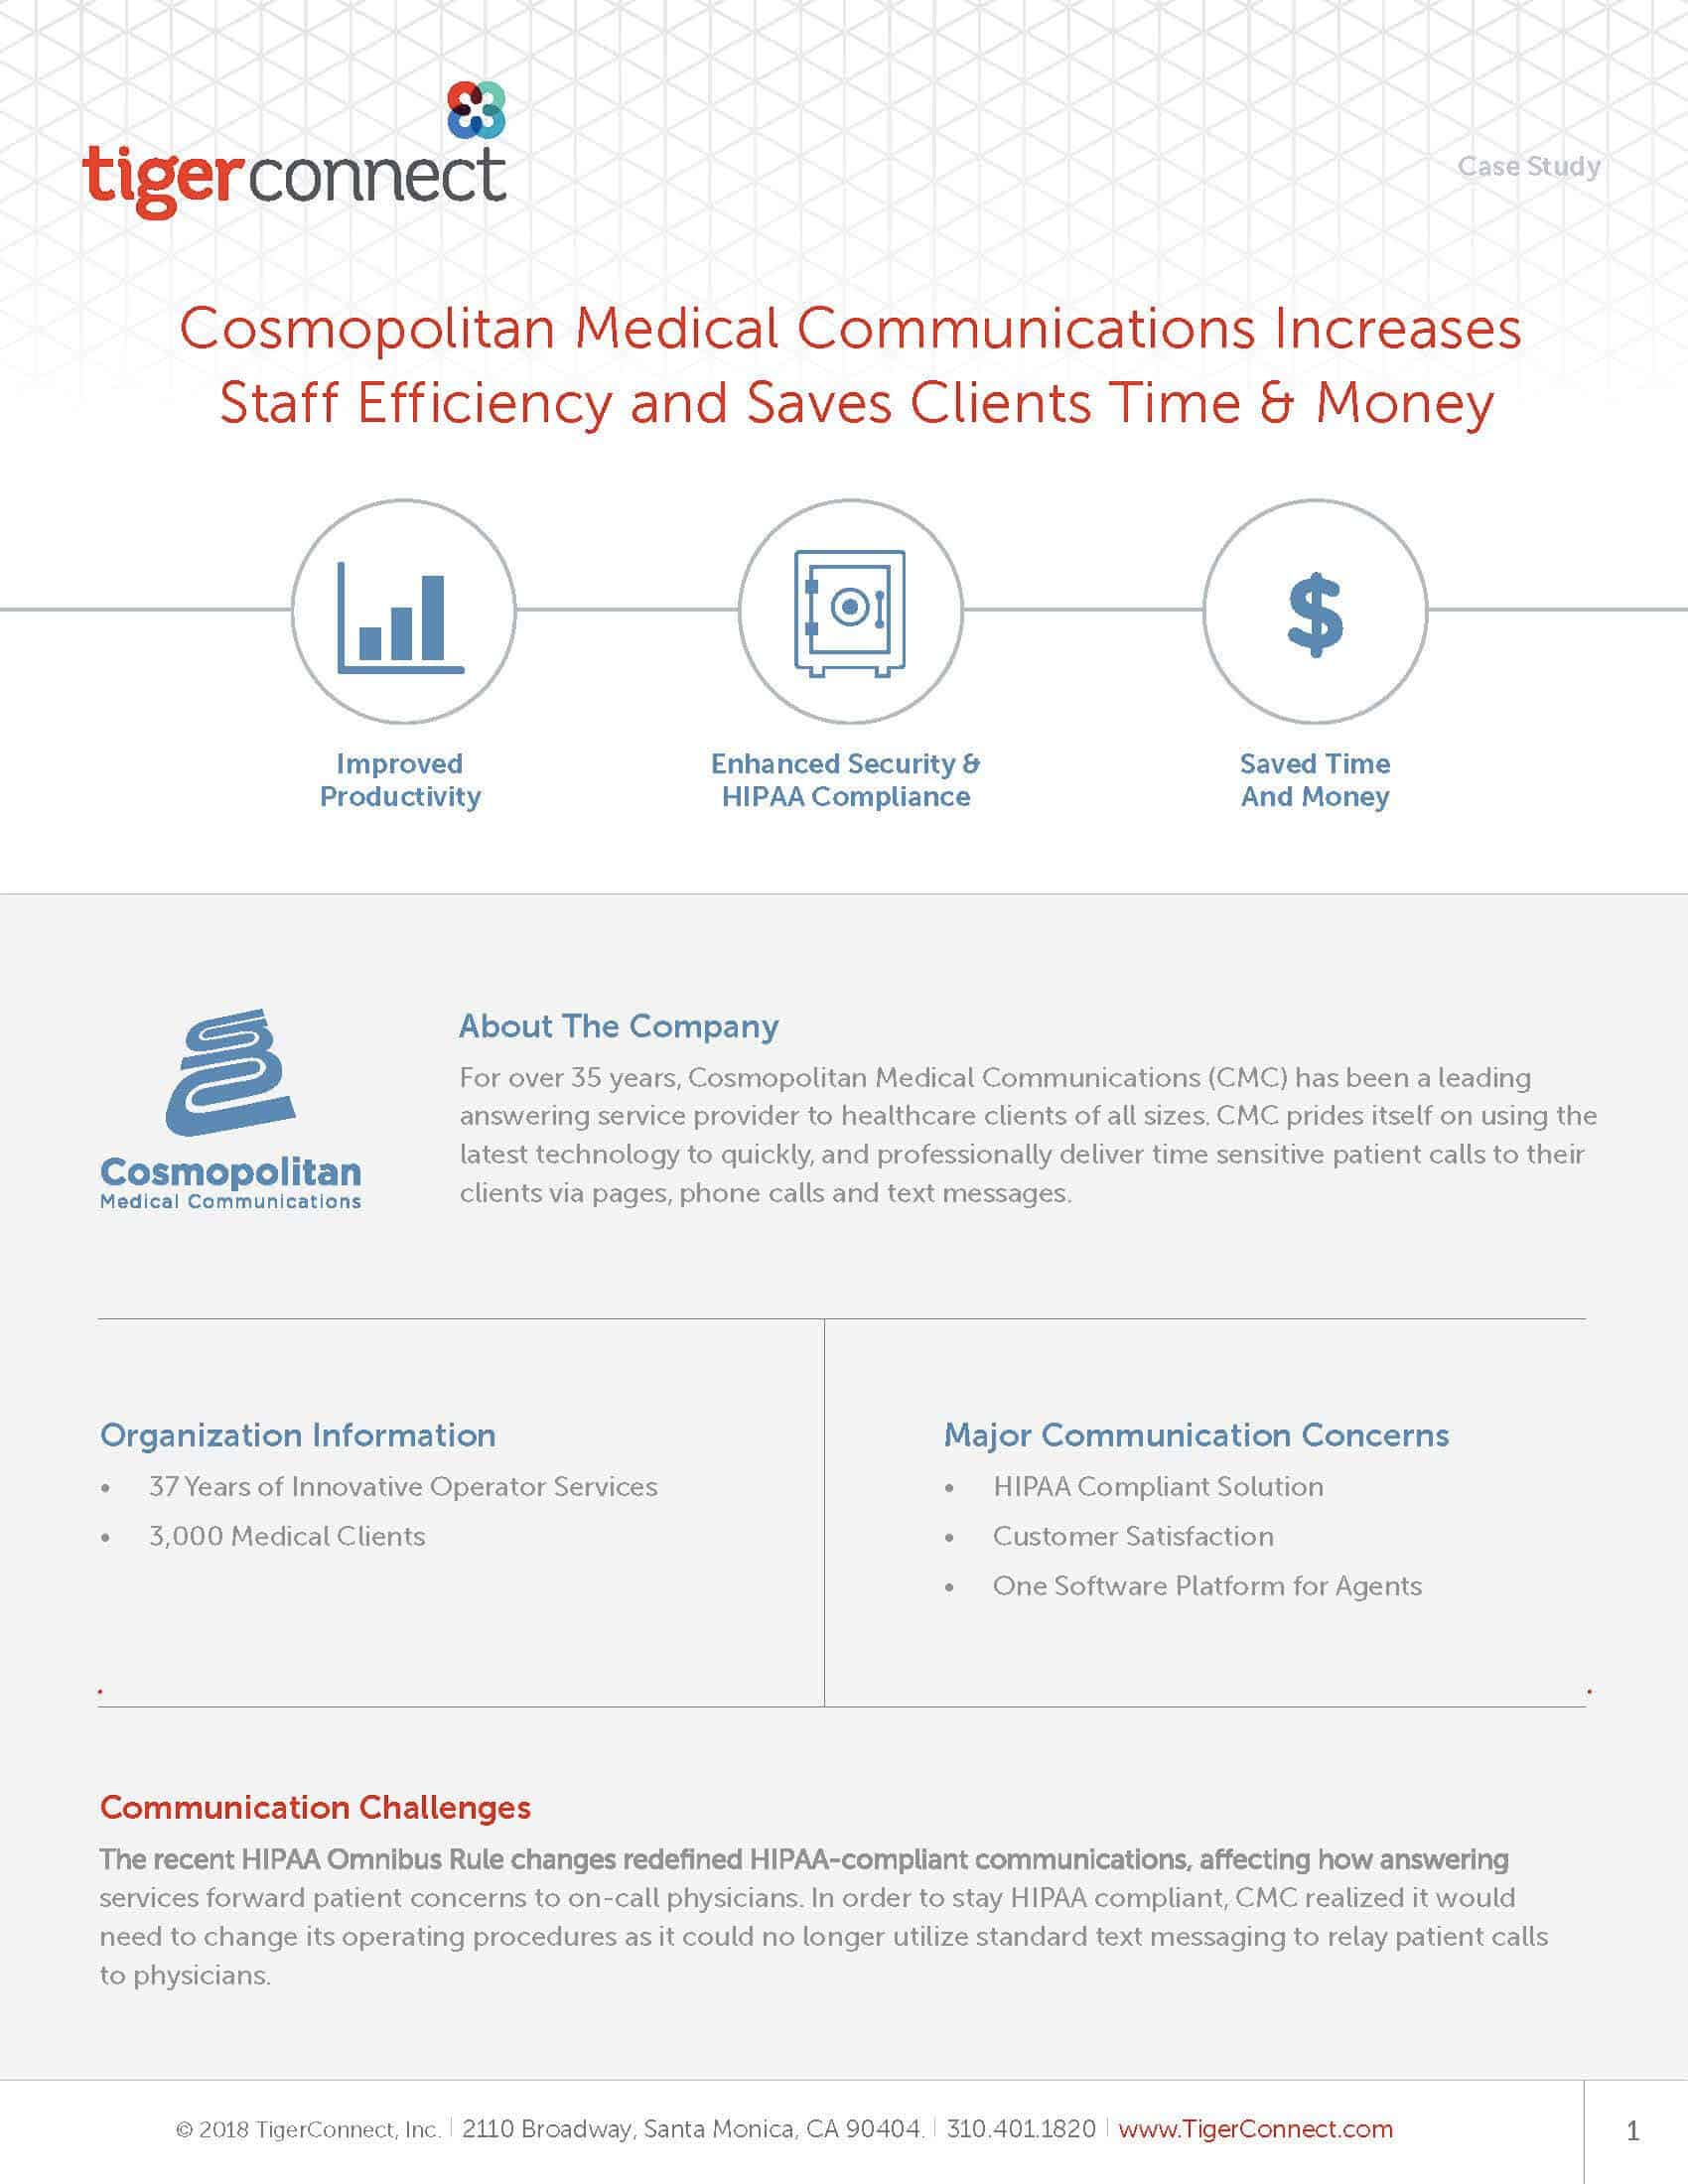 Cosmopolitan Medical Communications Case Study Preview